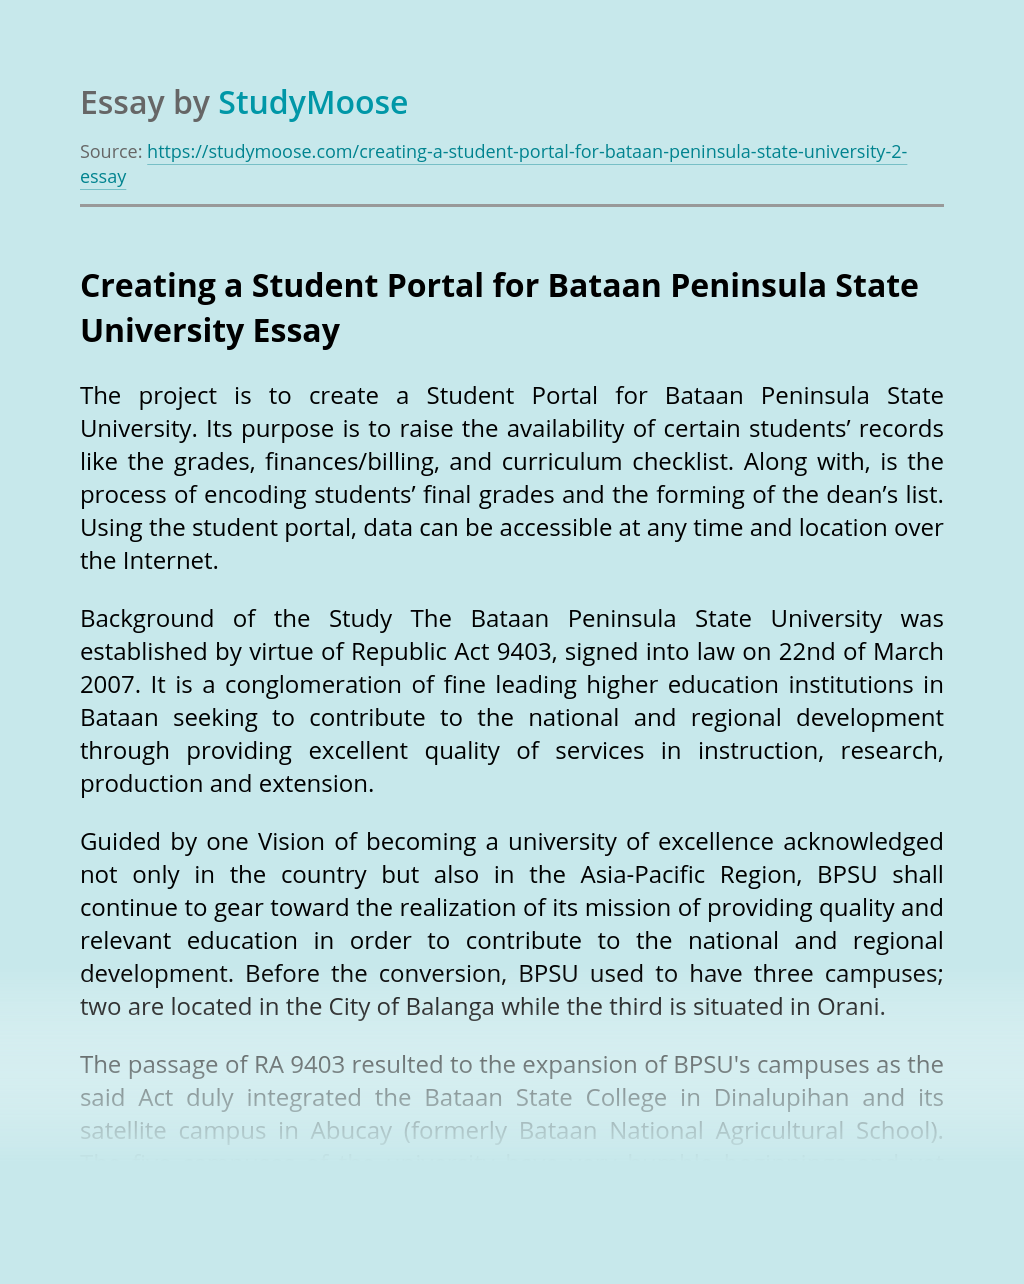 Creating a Student Portal for Bataan Peninsula State University